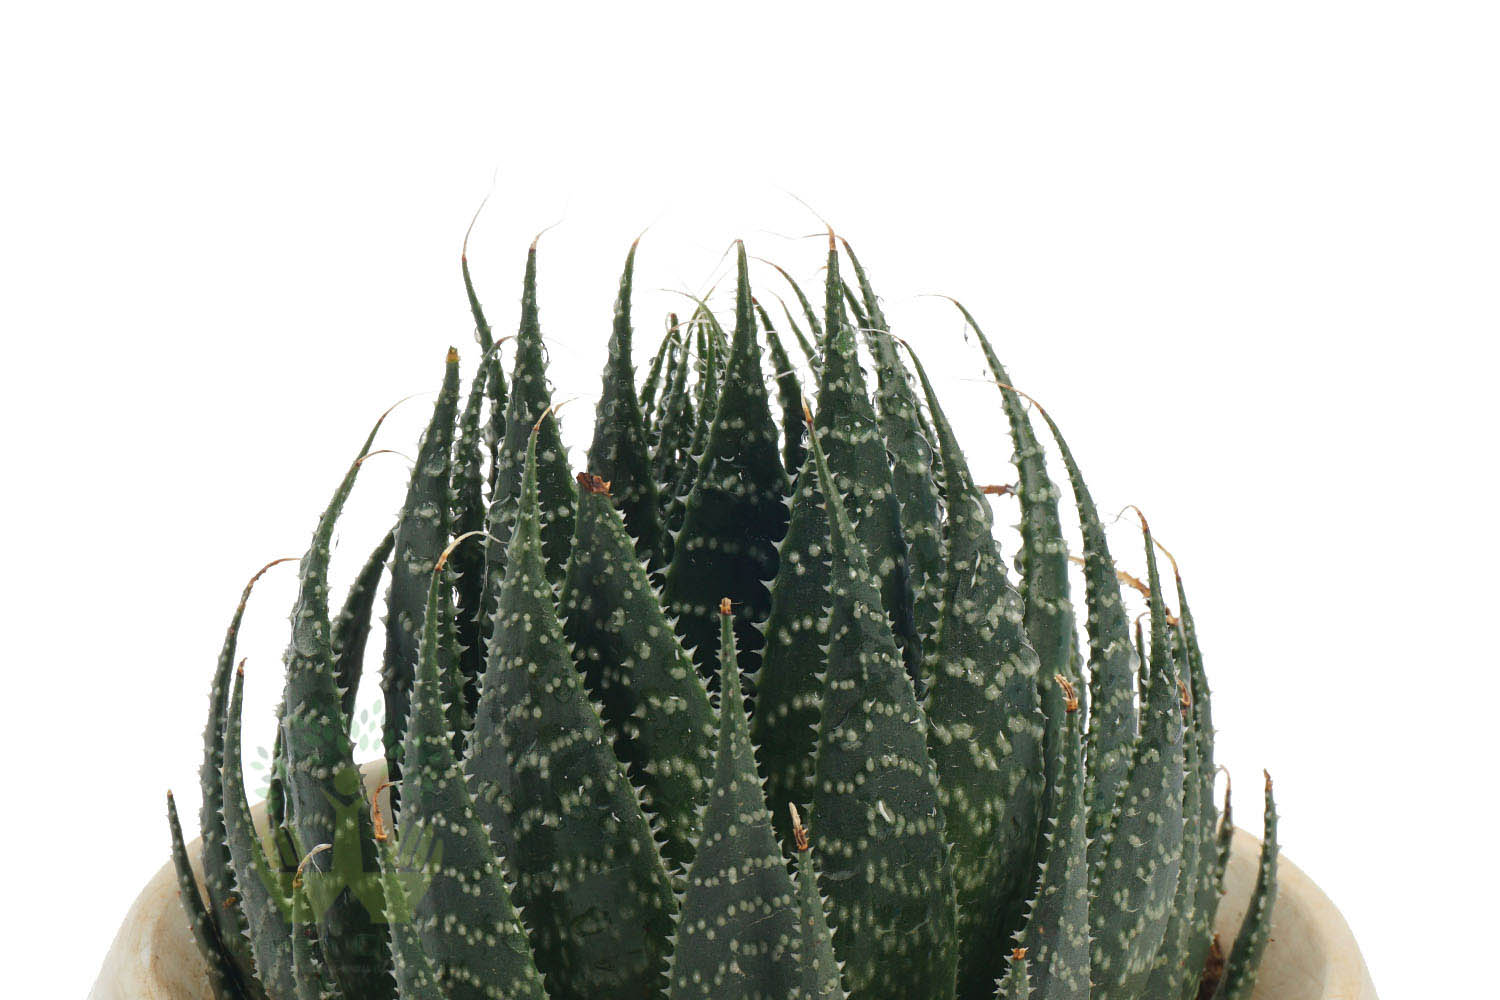 Buy Aloe Humilis Plants , White Pots and seeds in Delhi NCR by the best online nursery shop Greendecor.